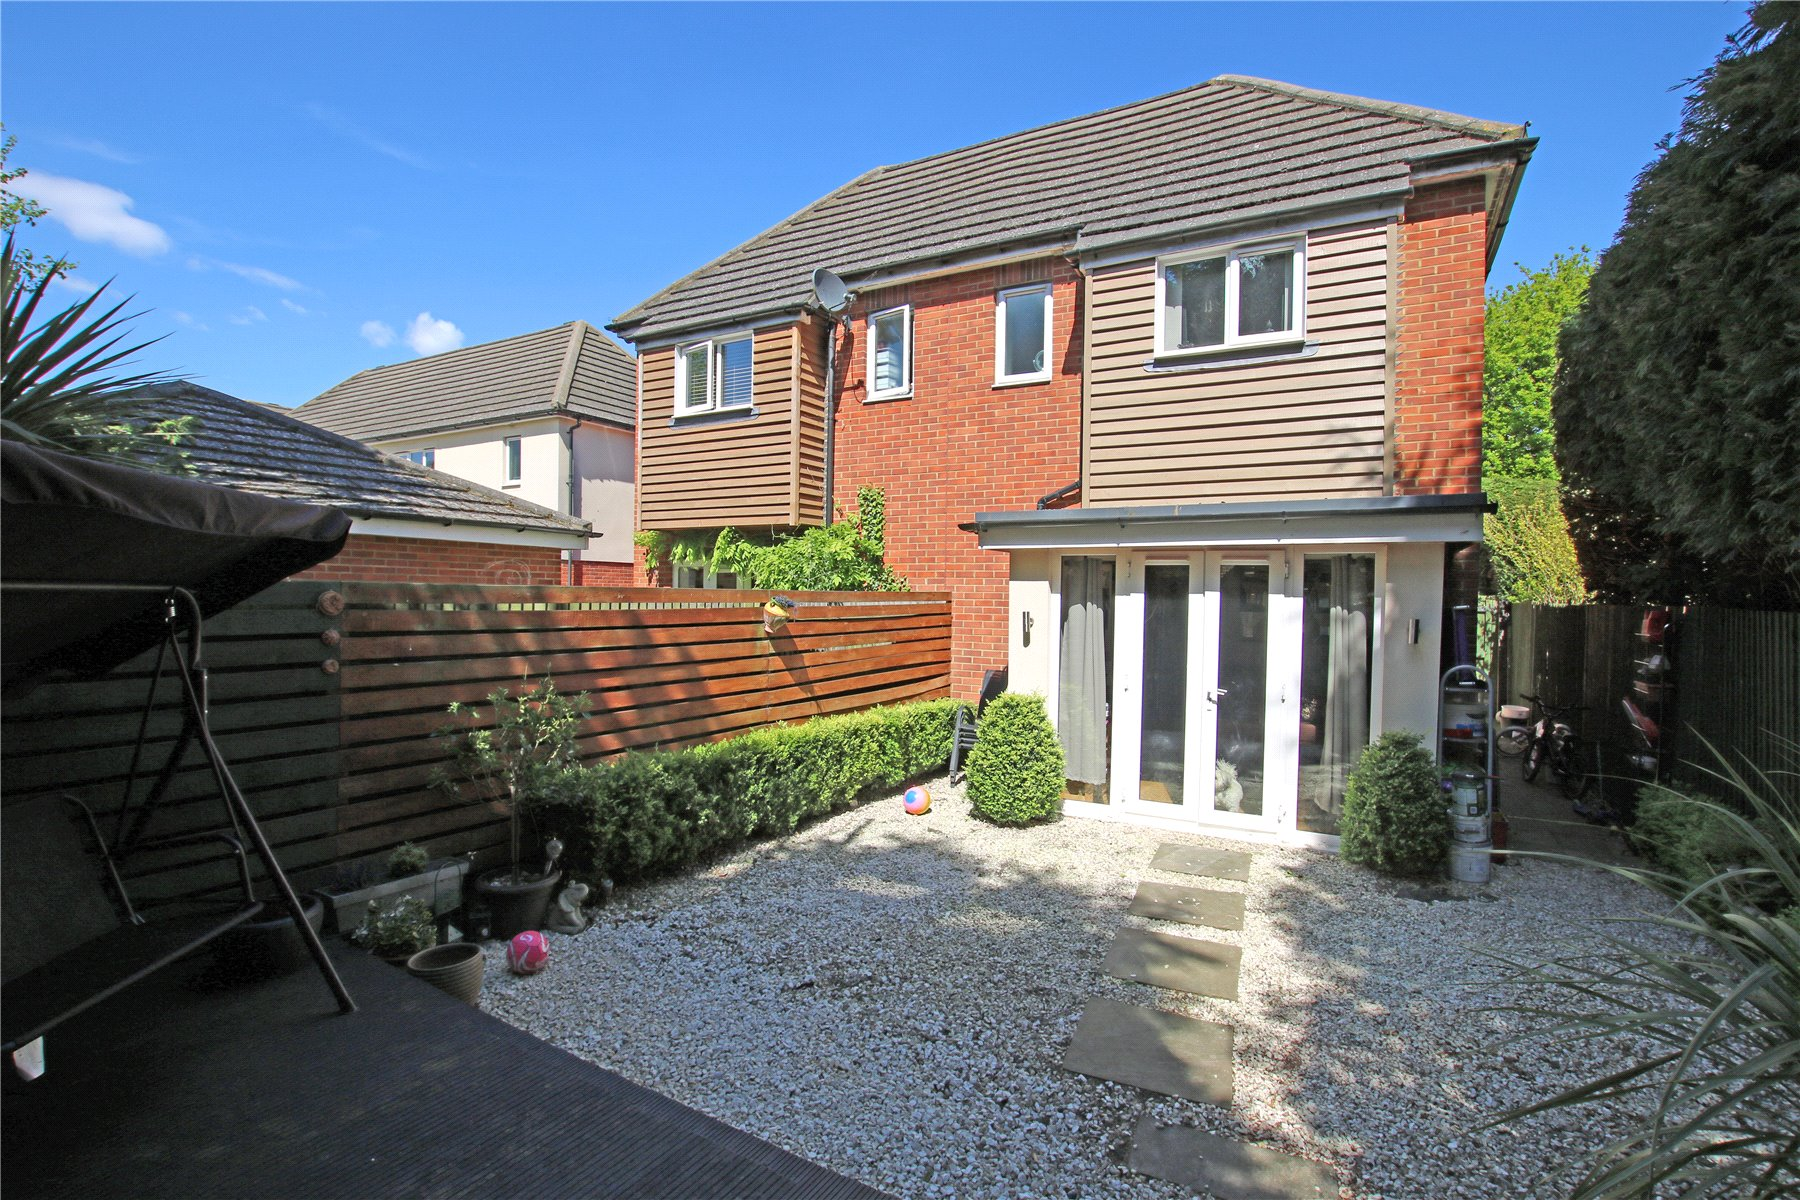 3 Bedrooms Semi Detached House for sale in Mayfield Gardens, New Haw, Addlestone, Surrey, KT15